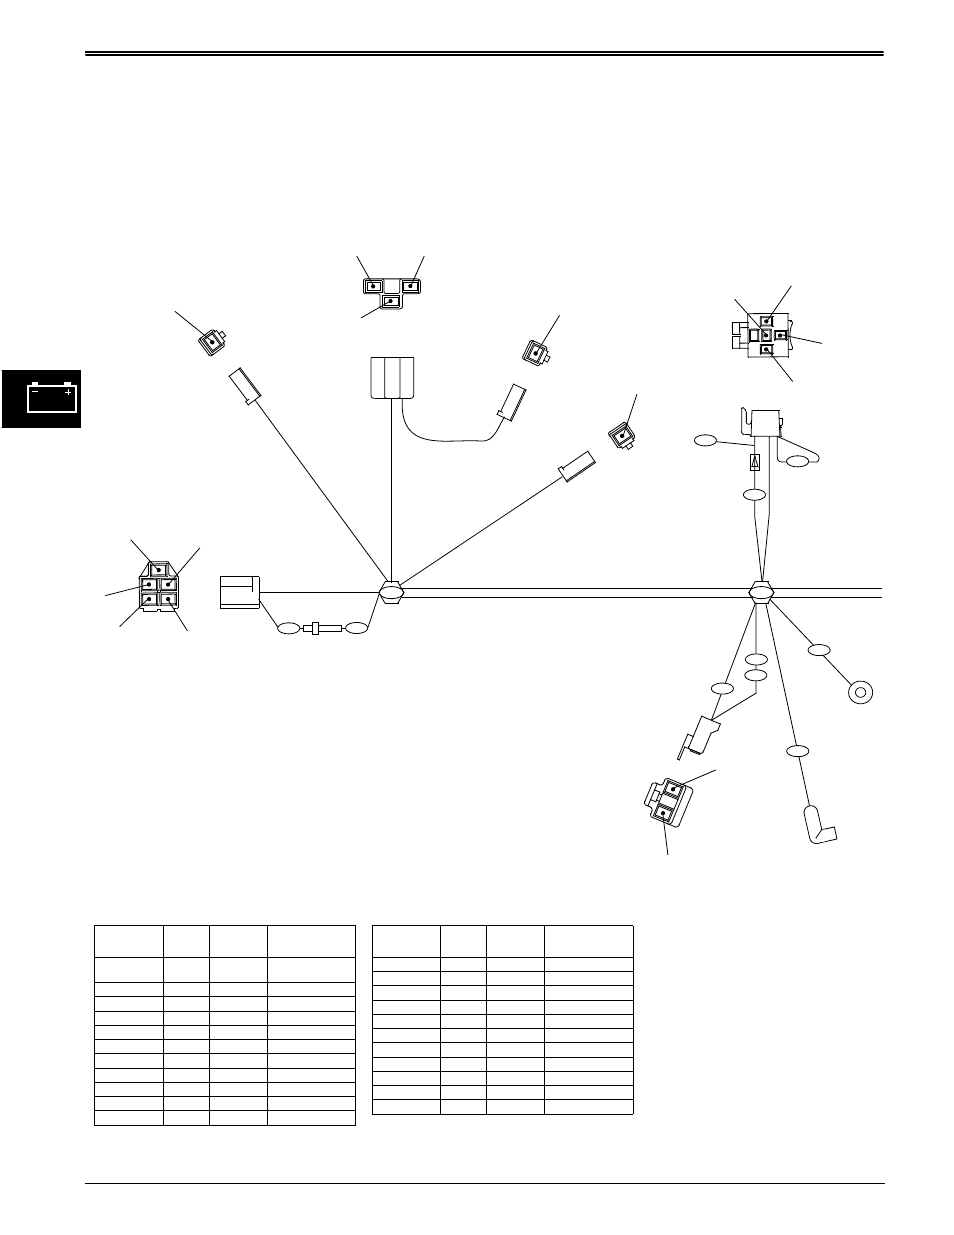 medium resolution of wiring harness diagrams electrical john deere stx38 user manual page 94 314